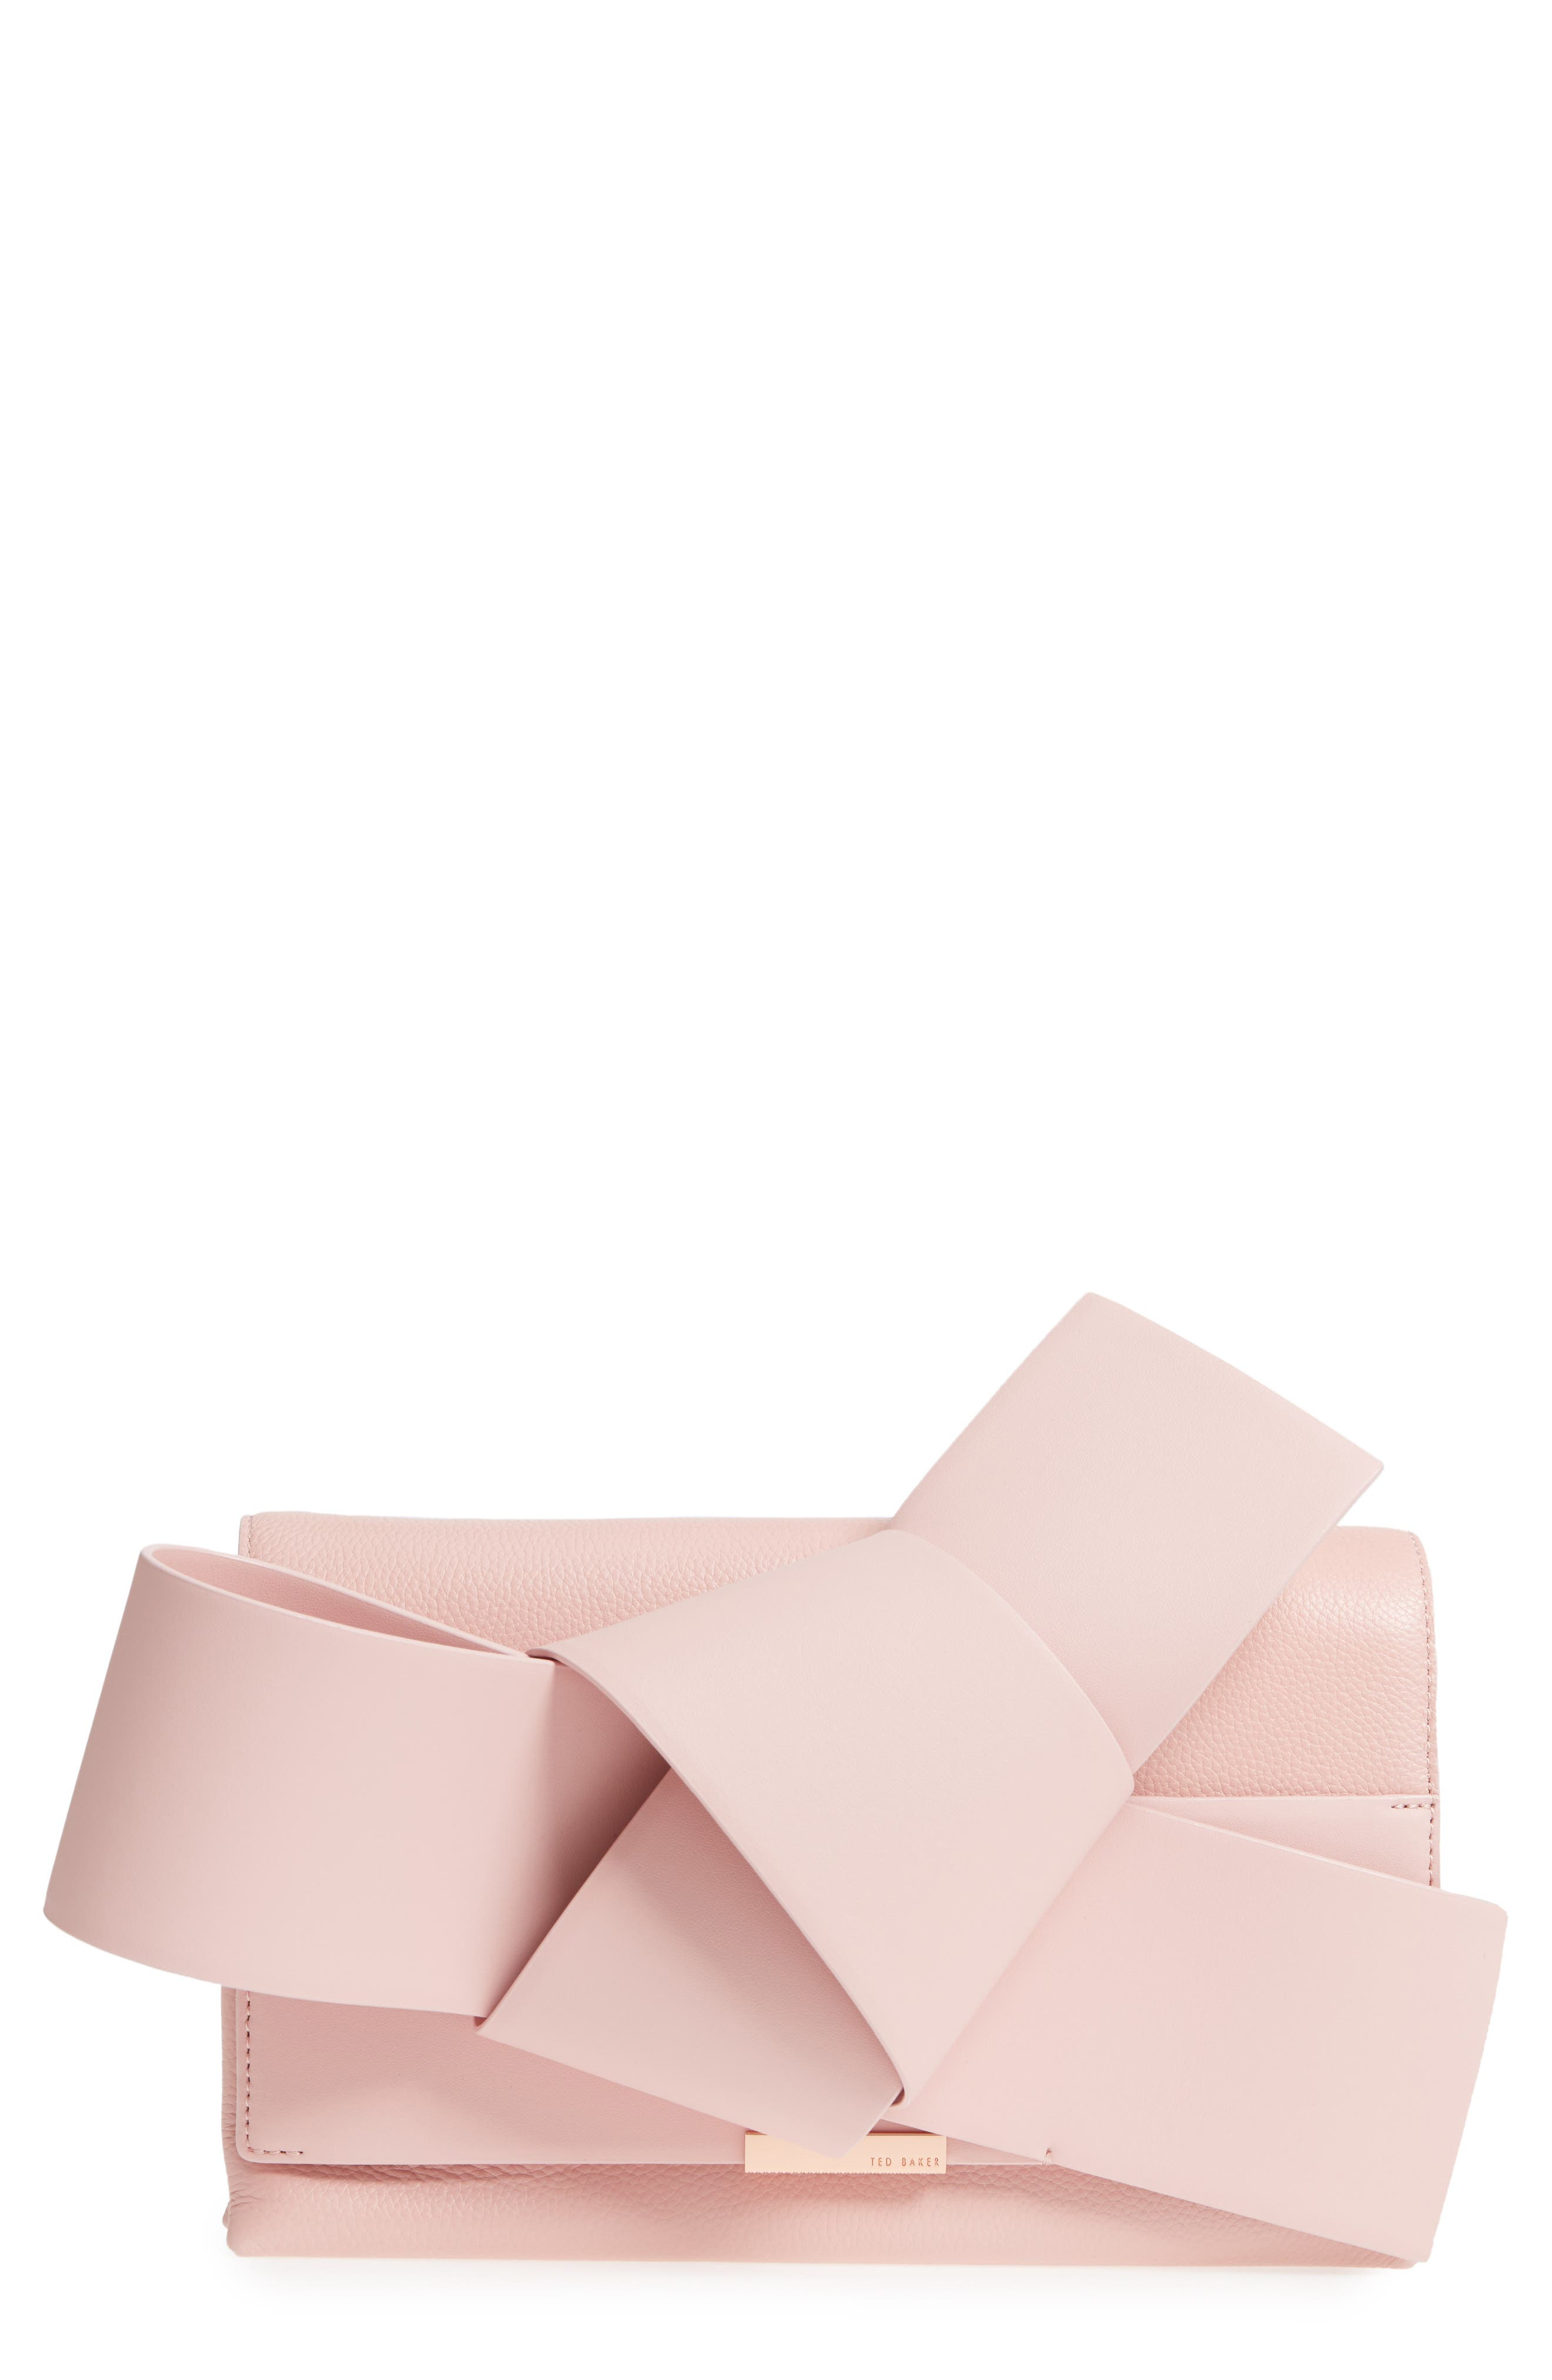 Knotted Bow Leather Clutch,                         Main,                         color, Light Pink